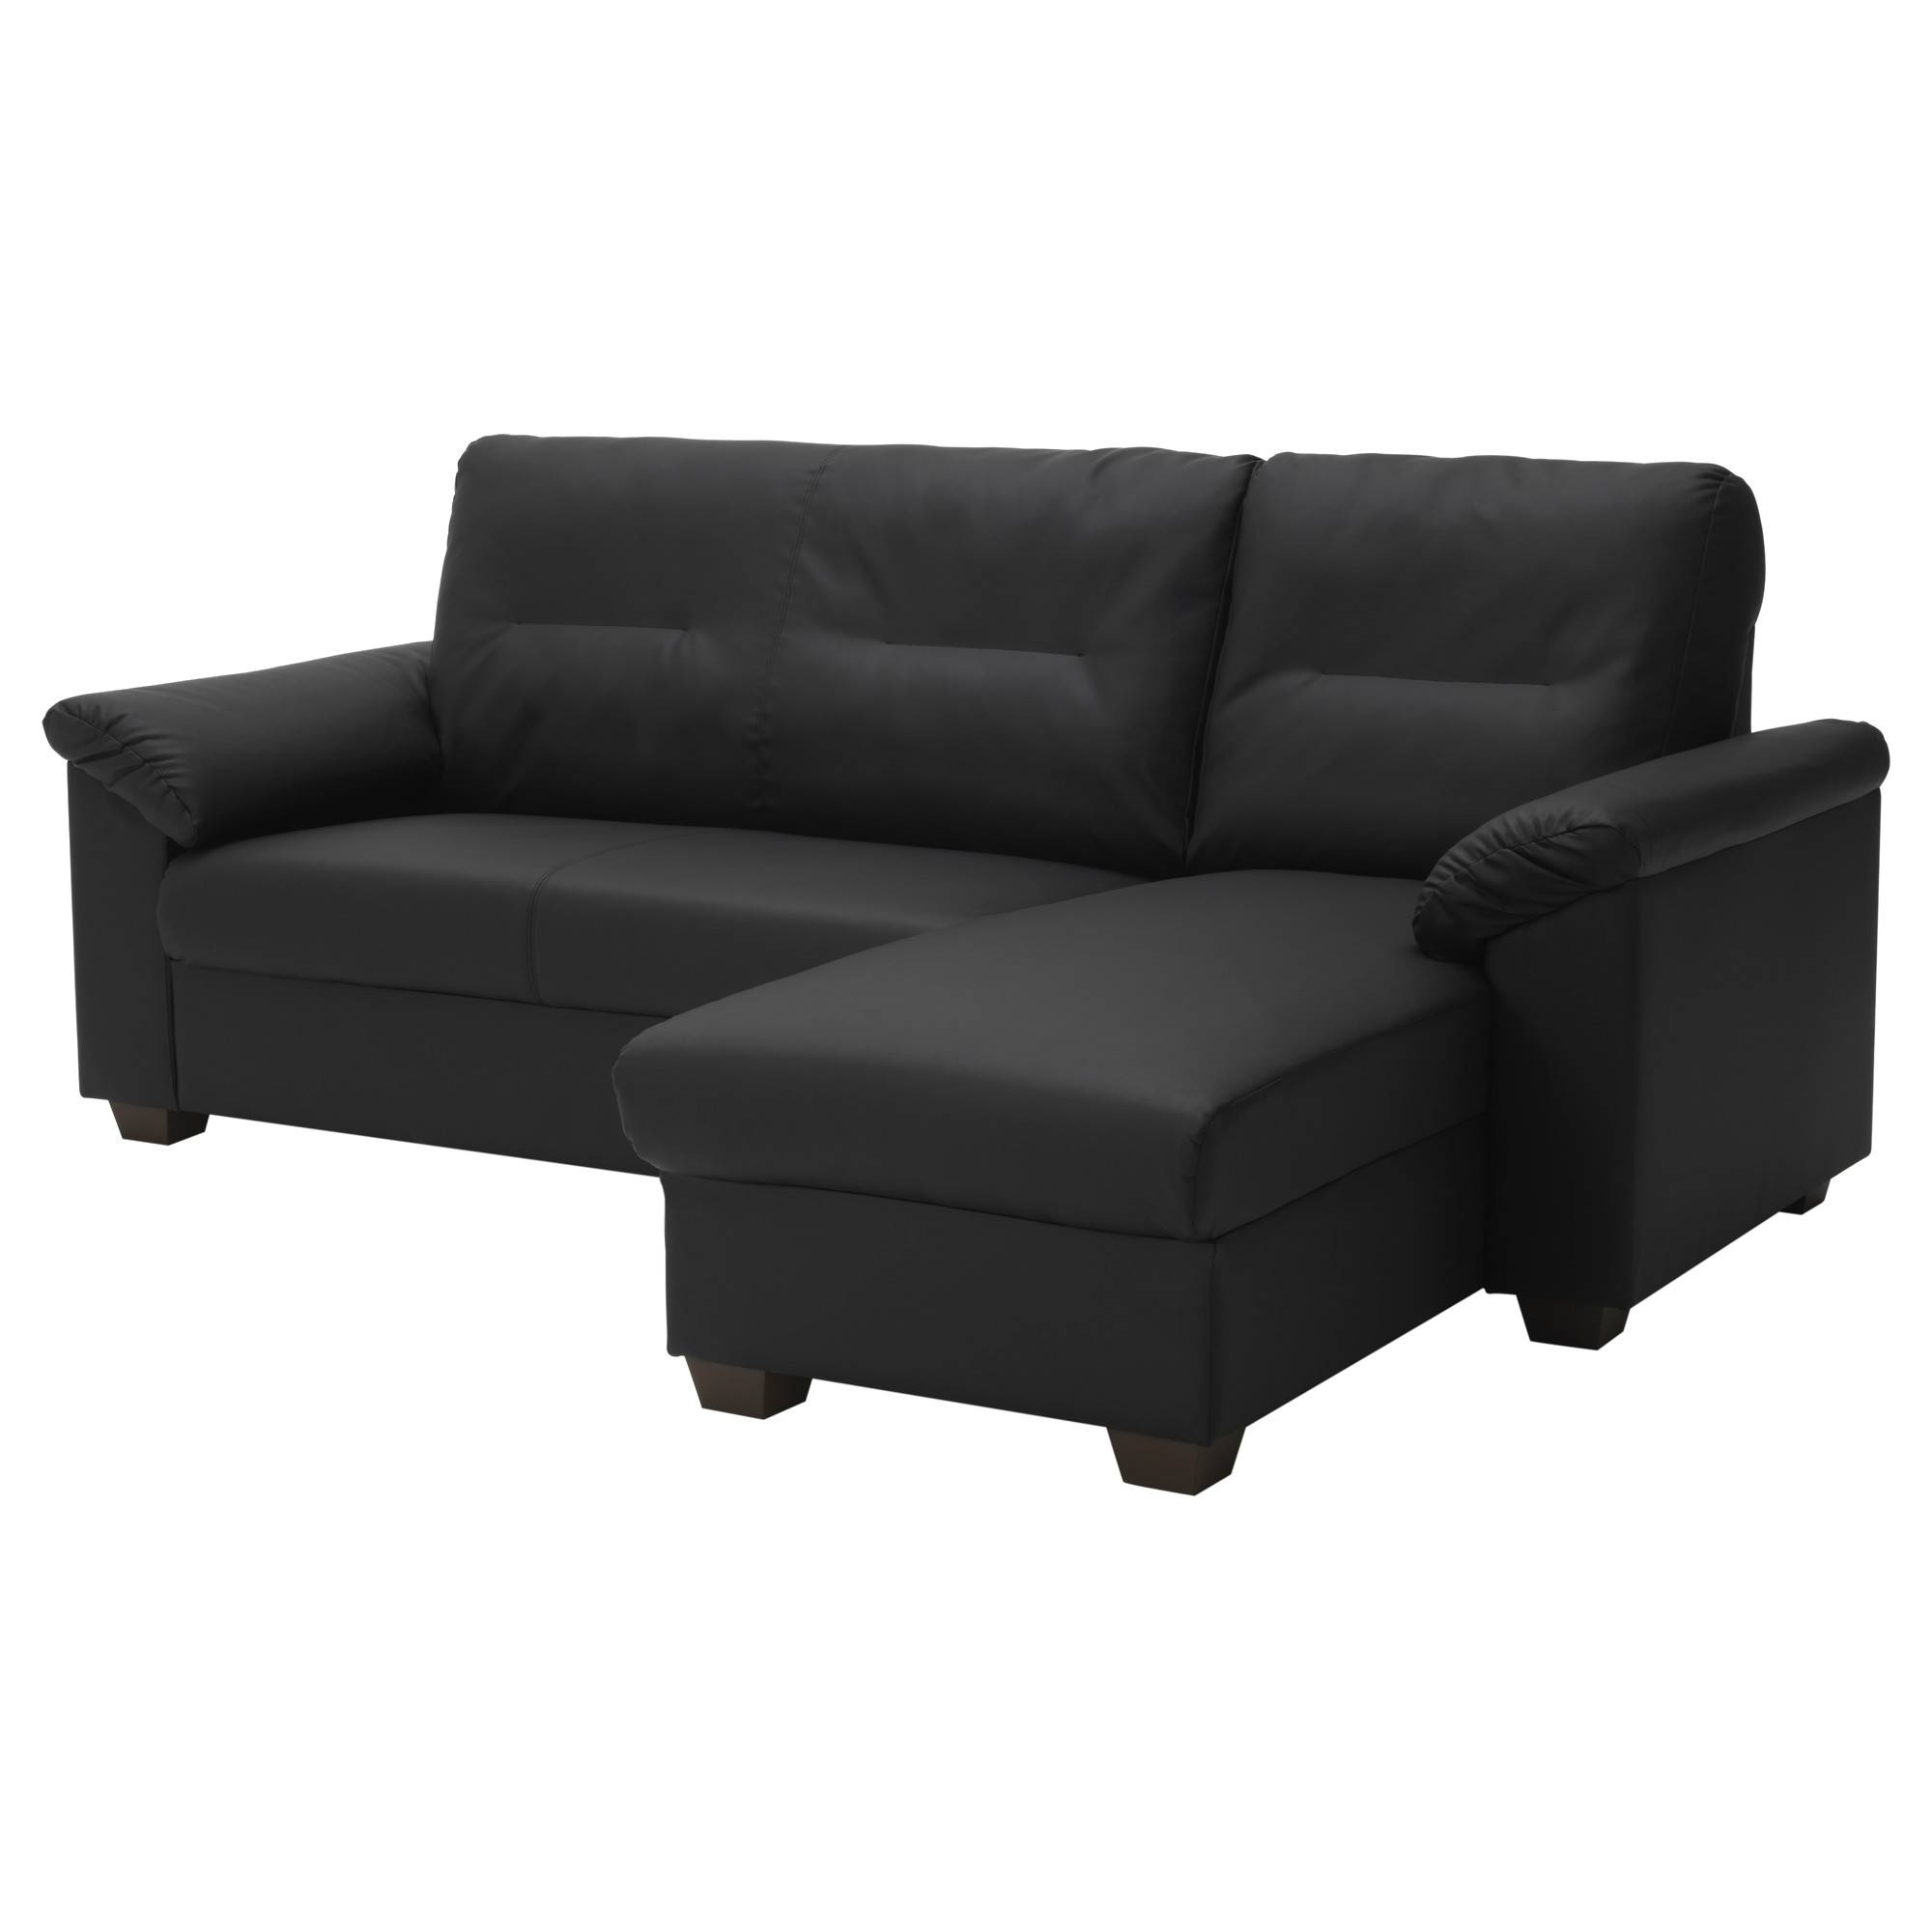 Furniture: Splendid Sectional Couches Ikea With Modern Styles And pertaining to Curved Sectional Sofa With Recliner (Image 19 of 30)